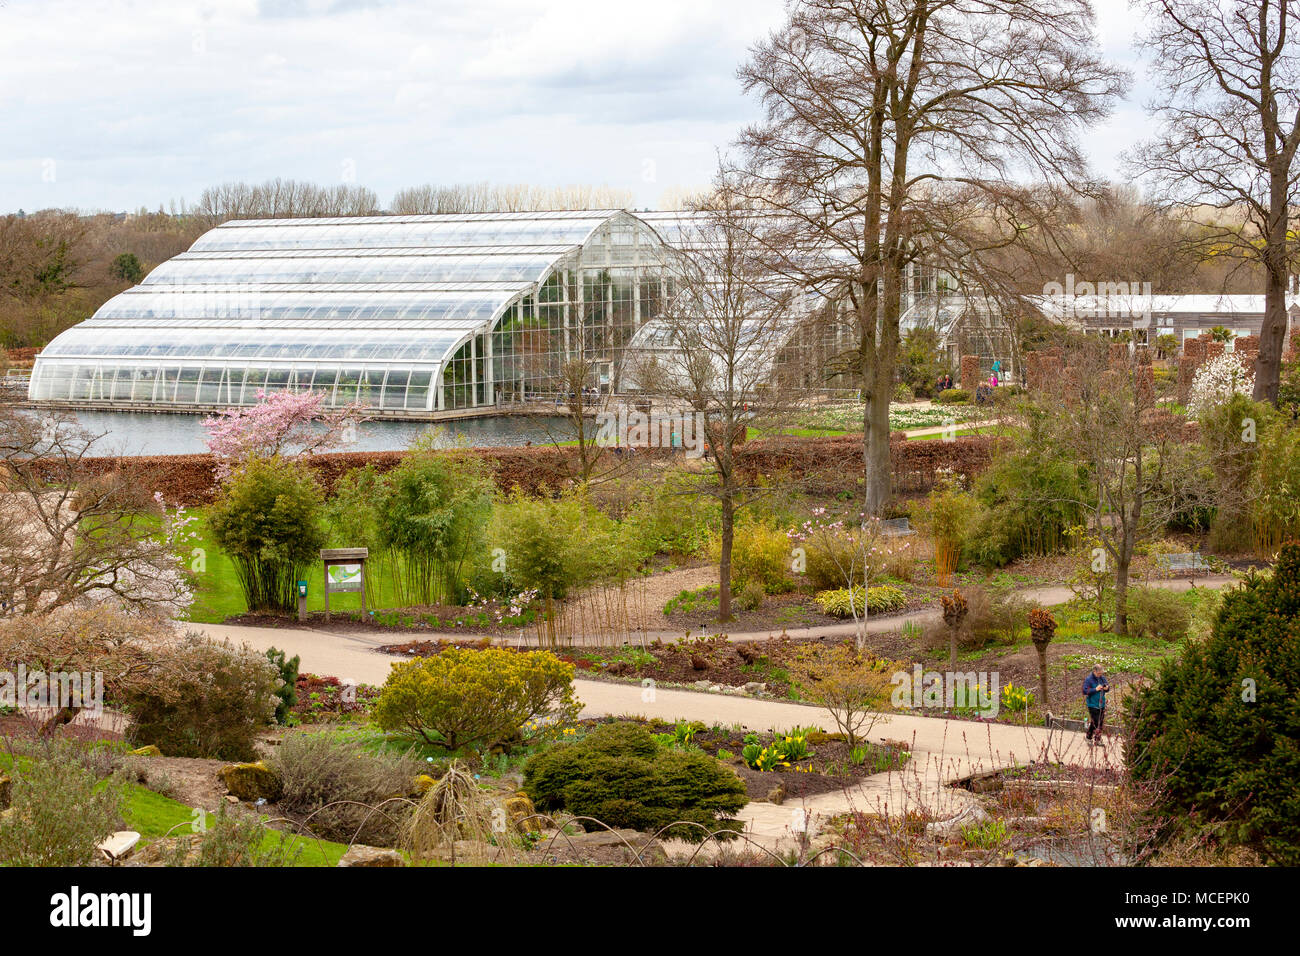 The Glasshouse at RHS Wisley - Stock Image